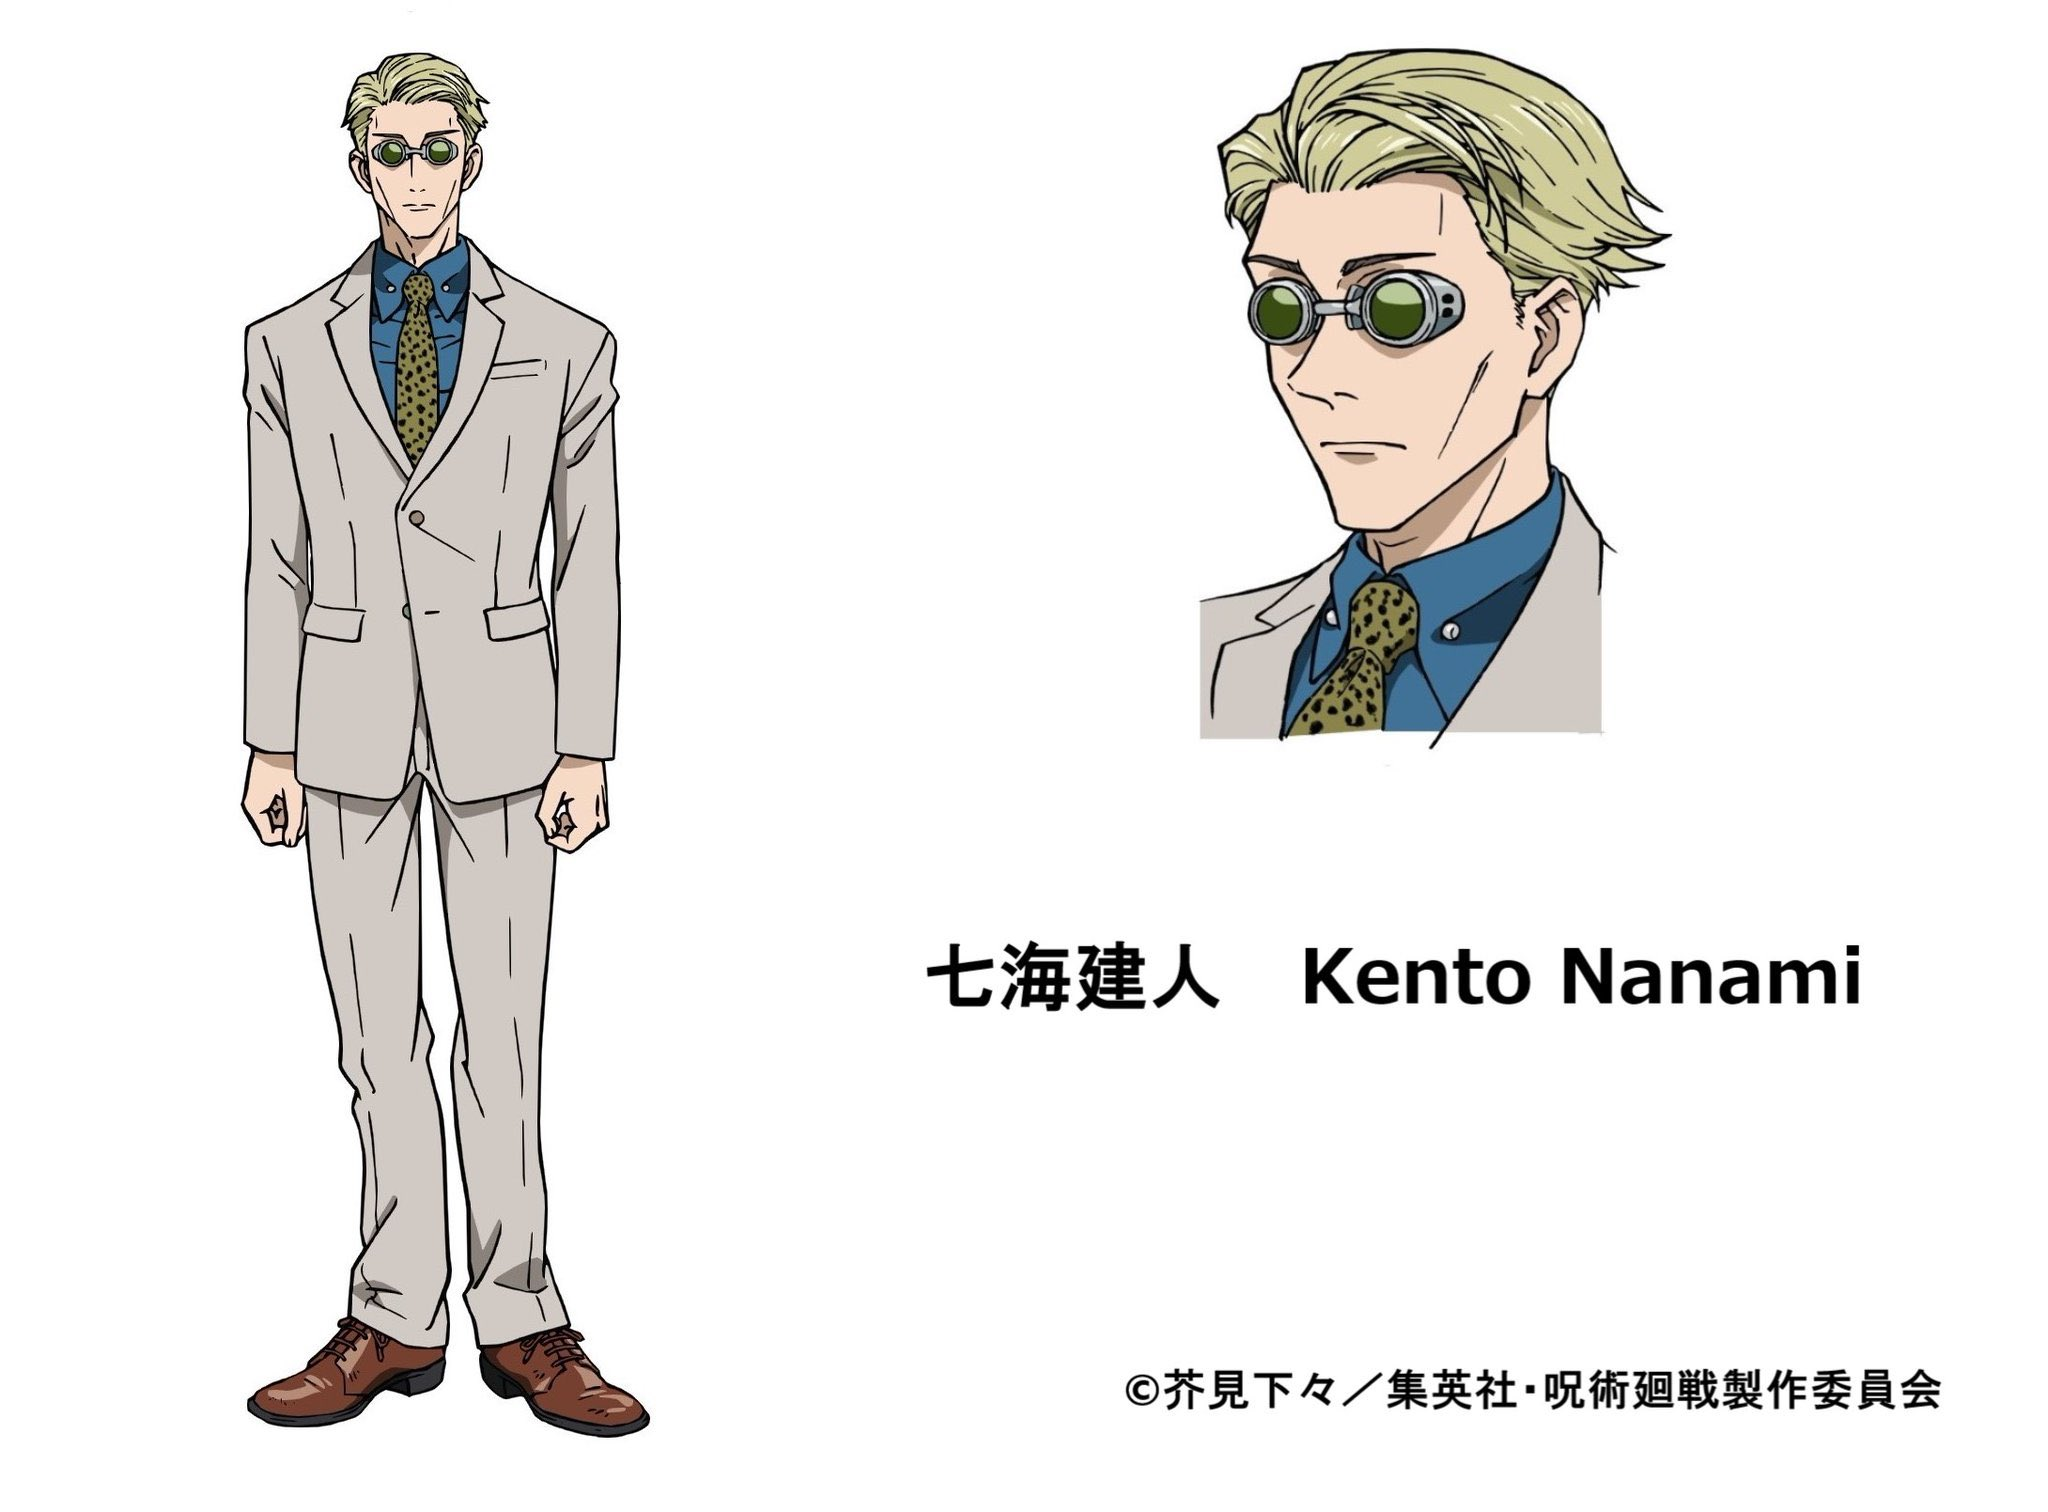 Jujutsu Kaisen On Twitter New Character Design For Kento Nanami Has Been Released He Will Be Be Voiced By Kenjiro Tsuda